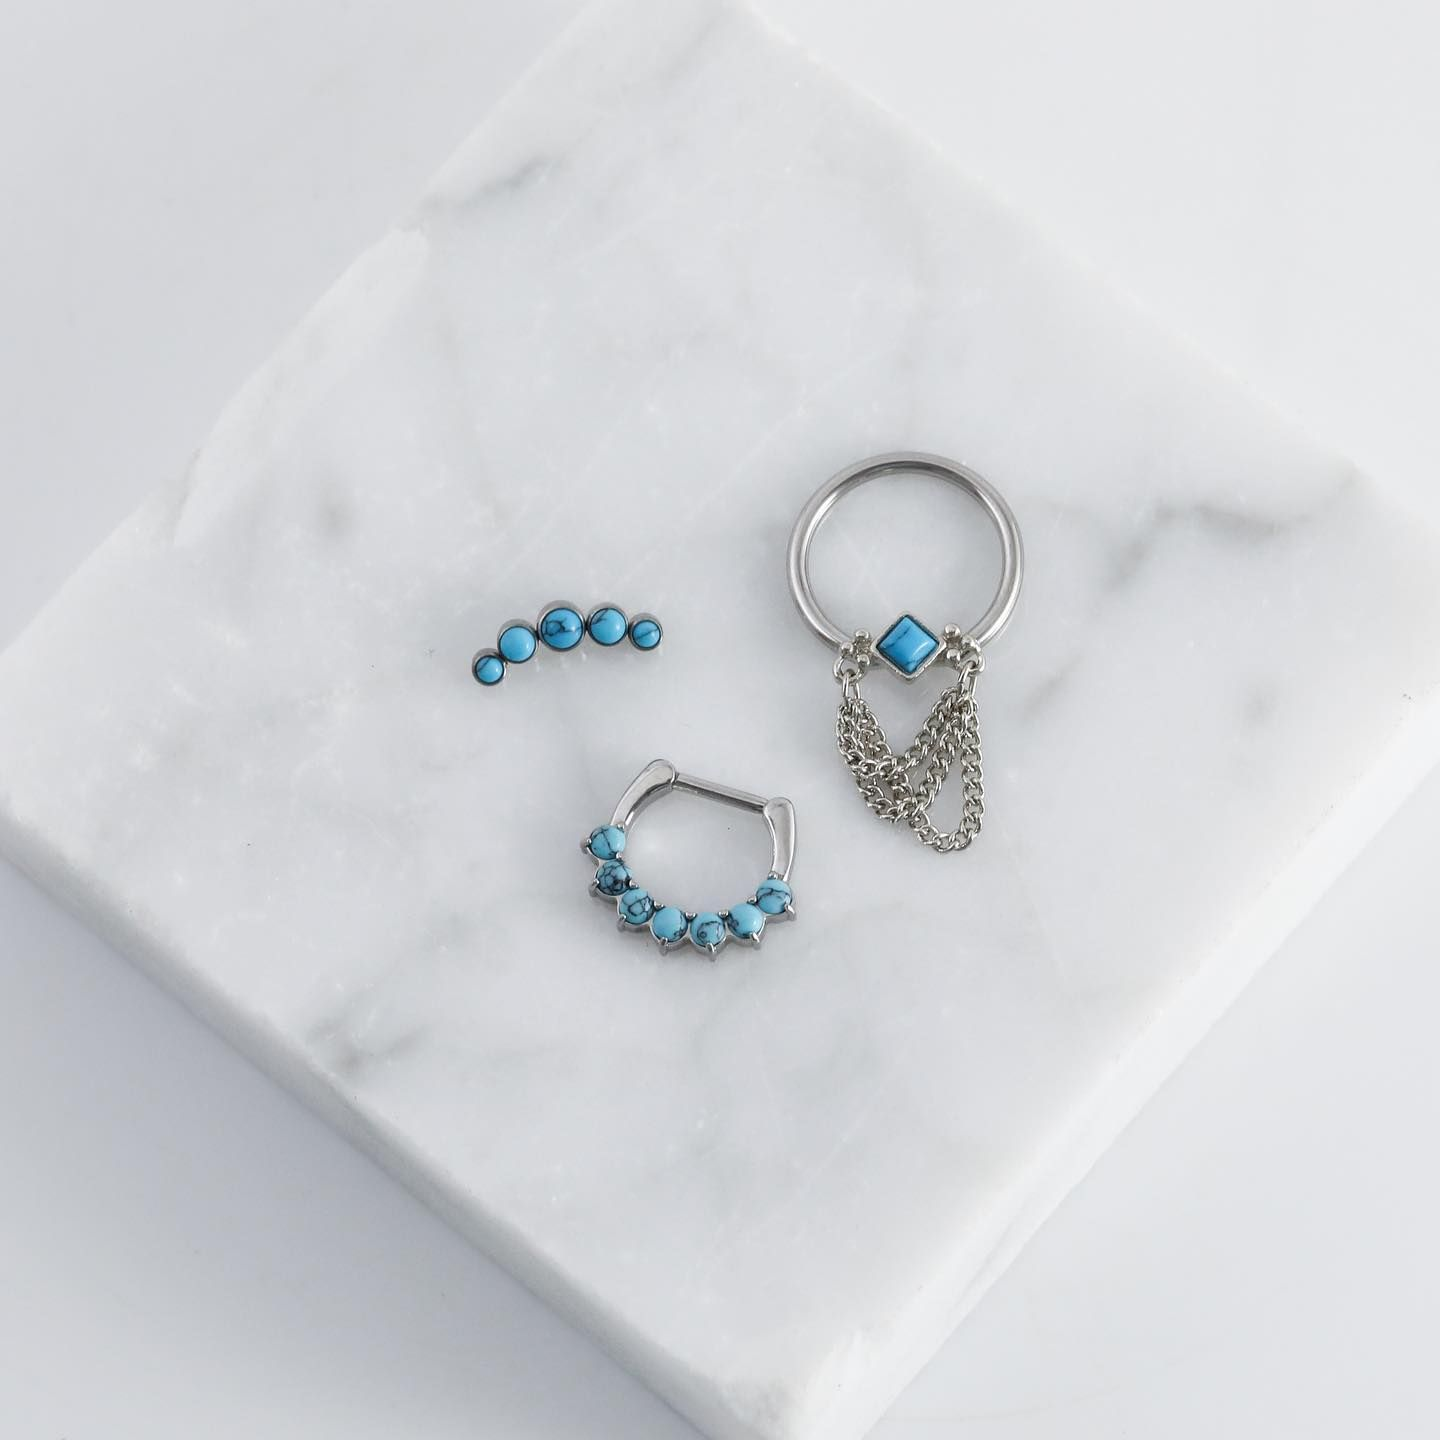 Buy 2 items and get the 3rd FREE today thru the 30th at 11:59pm cst on out site! There's NO LIMIT ❤ This set would be perfect for a septum, conch, and helix piercing!⠀ .⠀ SHOP: www.spiritadornments.com⠀ .⠀ .⠀ .⠀ .⠀ .⠀ #piercingjewelry #piercingjewellery #Bodyjewelry #piercings #septumpiercing #septumjewelry #septumring #daithpiercing #conchpiercing #turquoise #turquoisepiercing #turquoiselove